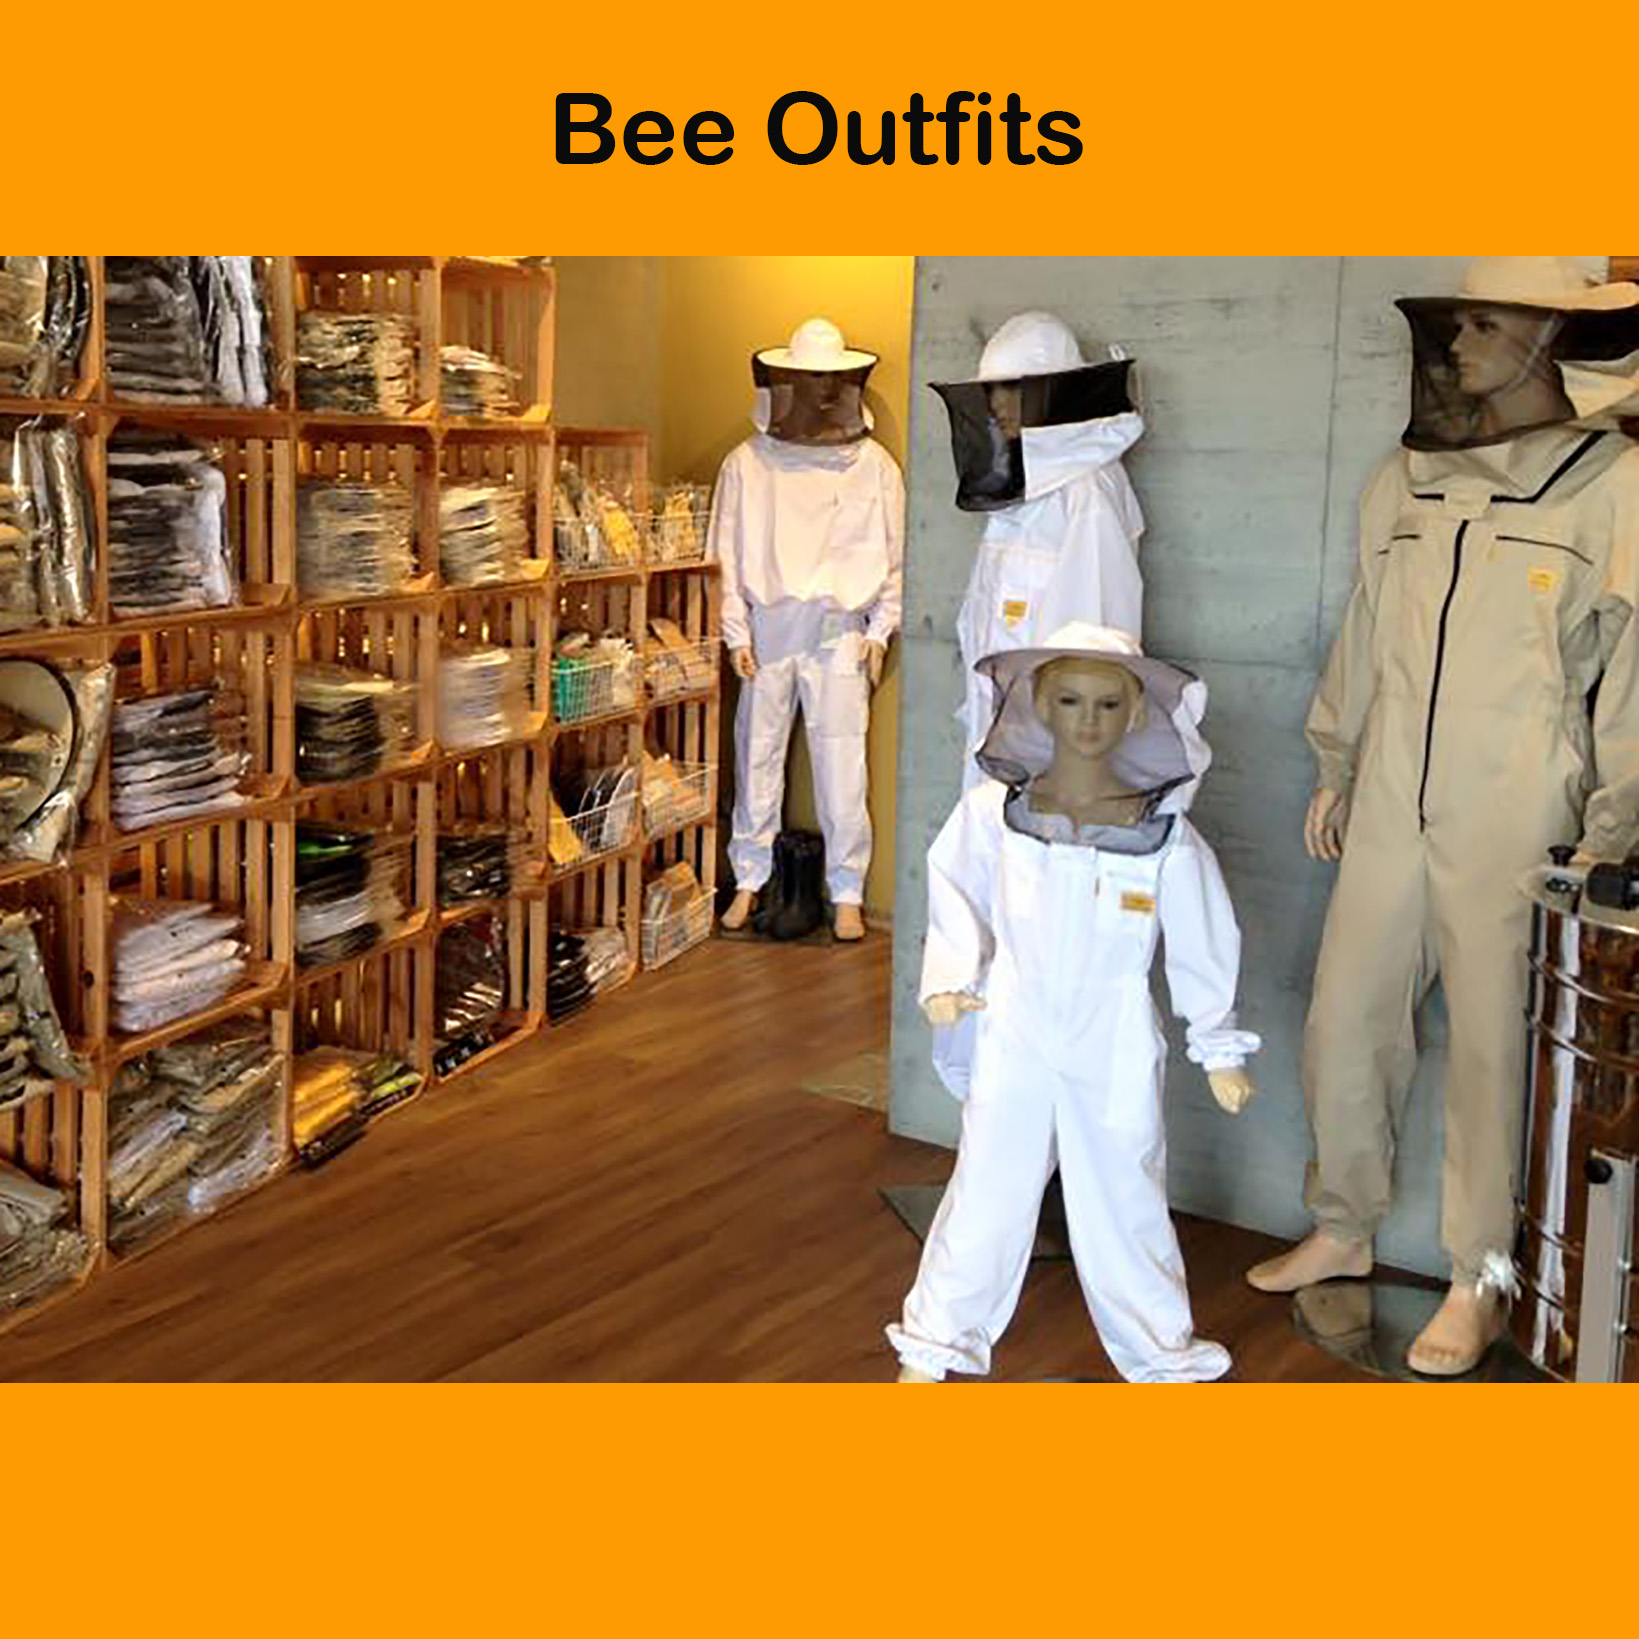 Bee Outfits